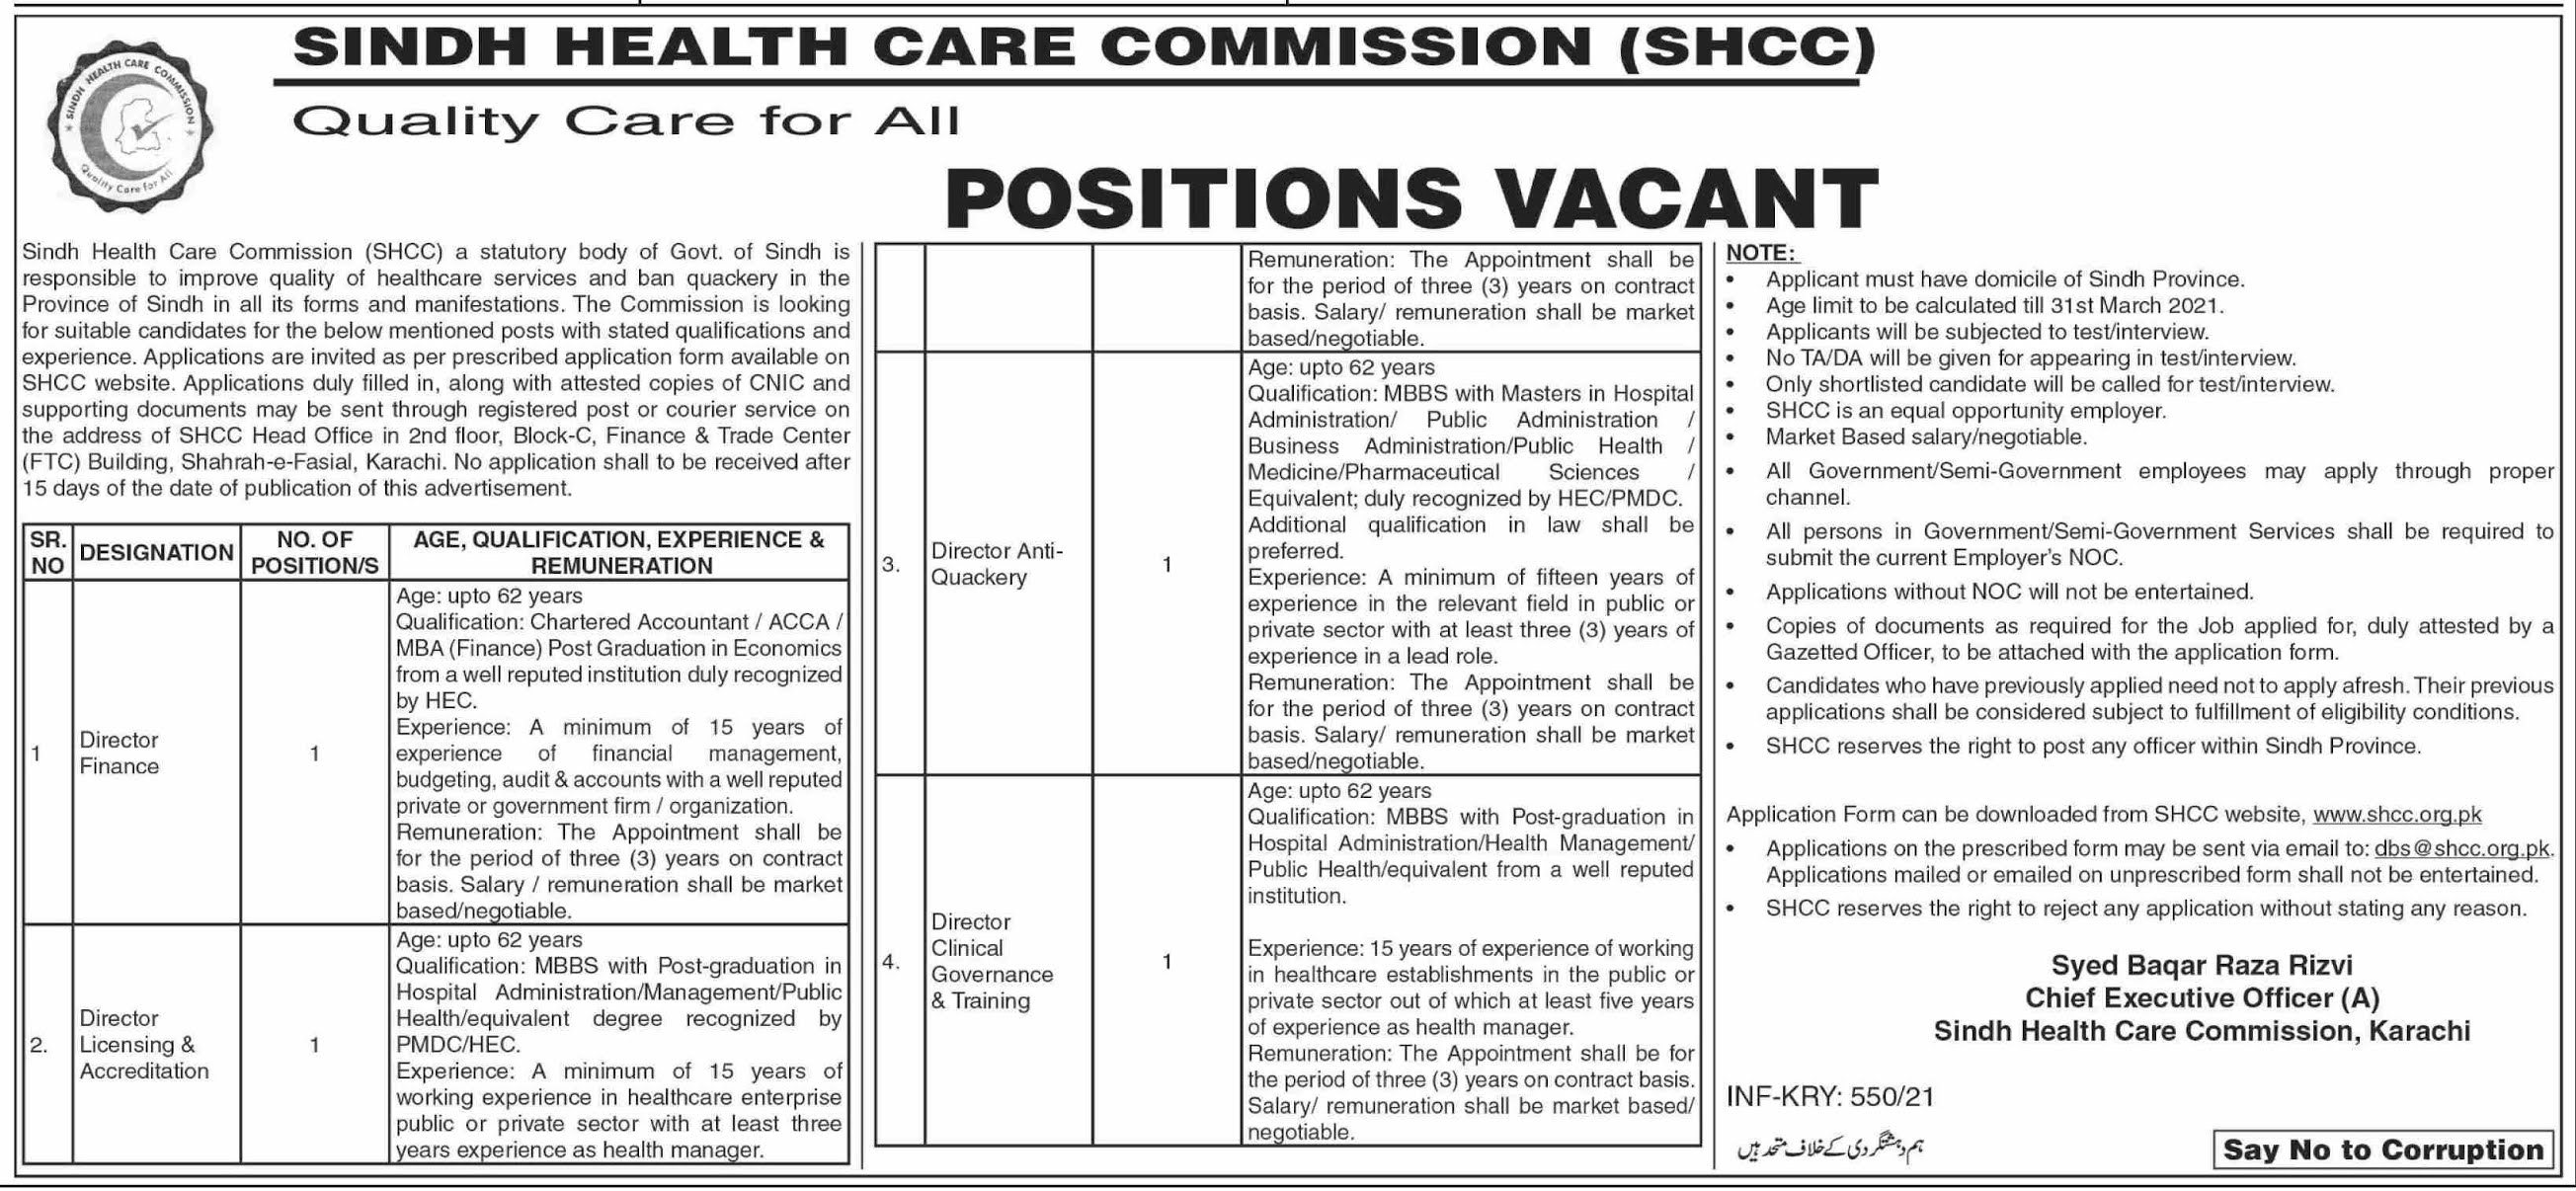 SHCC Jobs 2021 - Sindh Health Care Commission Jobs 2021 - Download Job Application Form - www.shcc.org.pk - dbs@shcc.org.pk